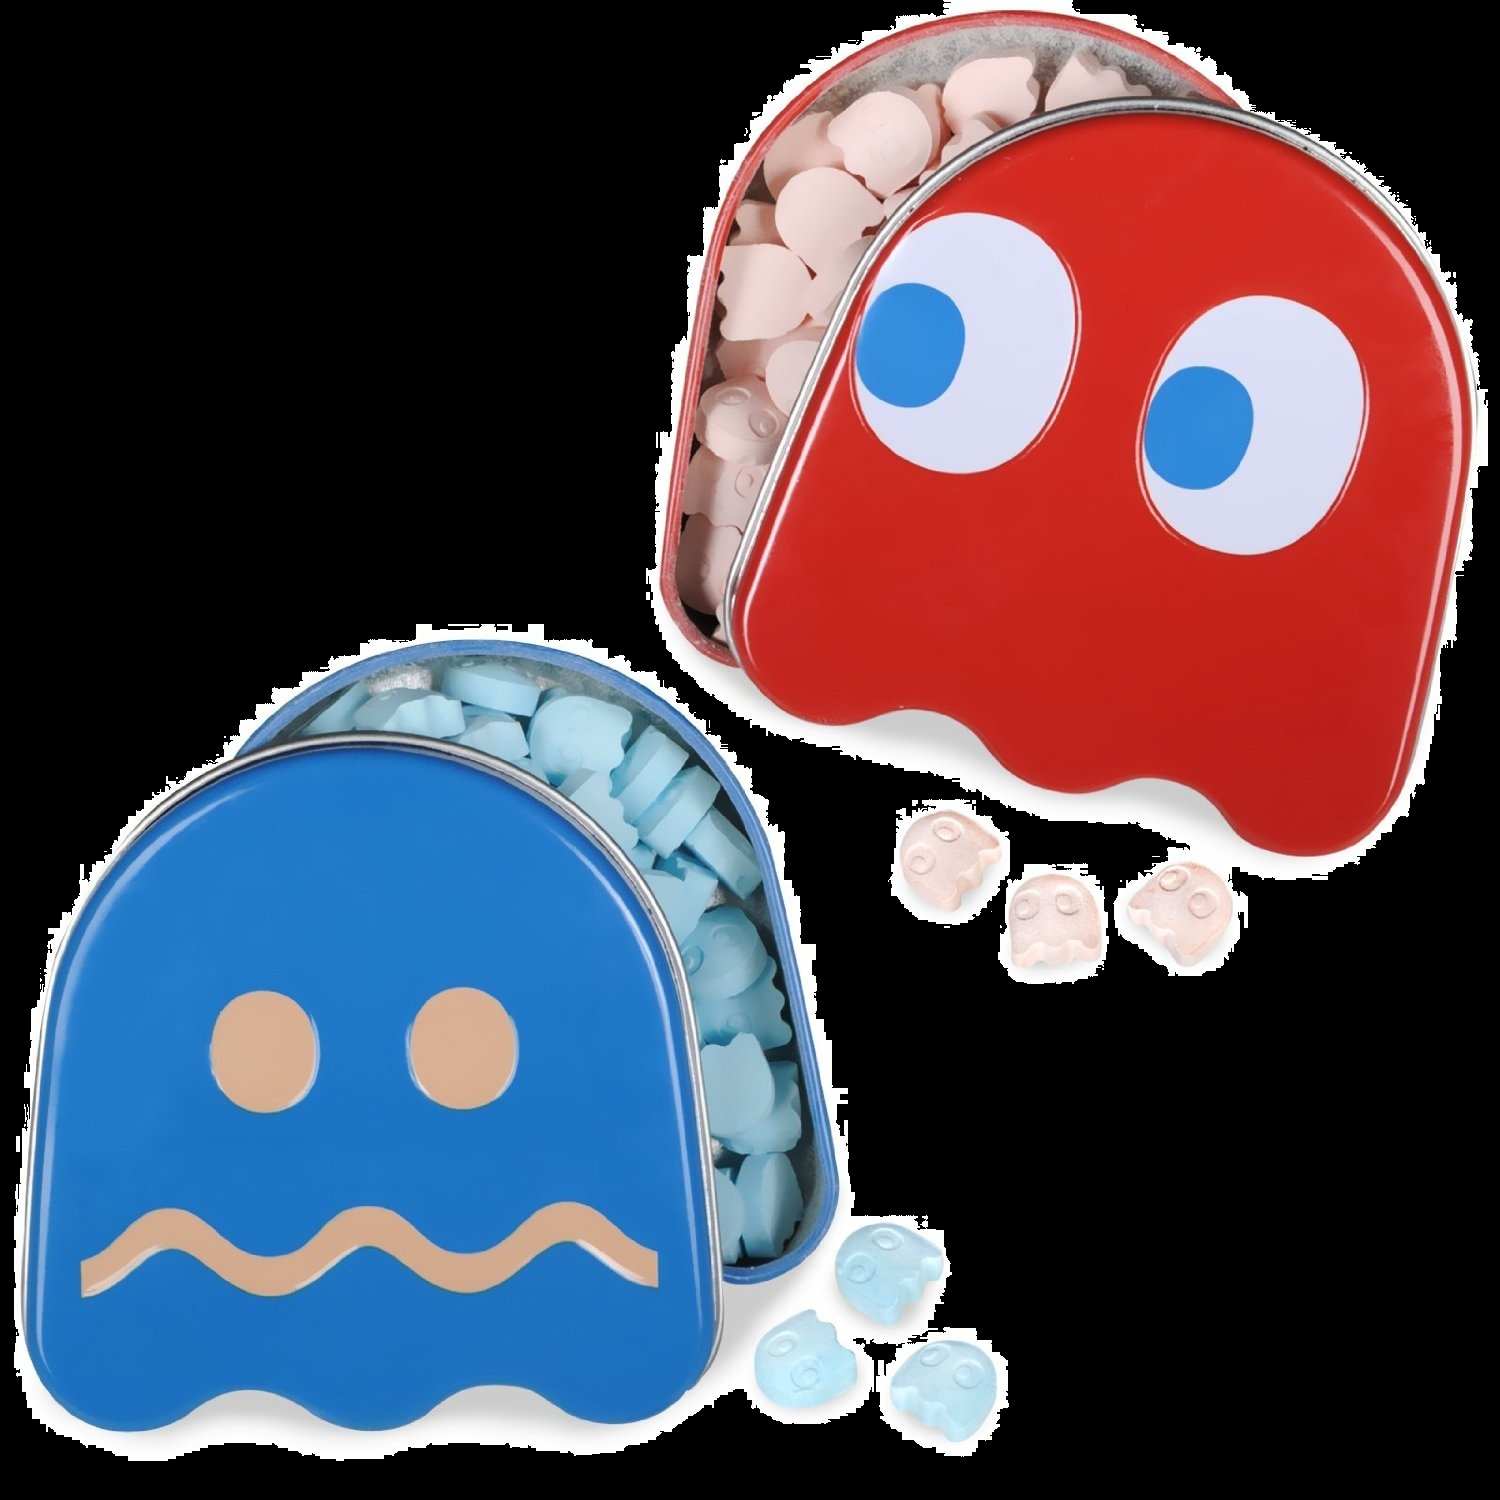 Buy Halloween Candy For Sale Ghost Candy Pac Man Ghosthunting